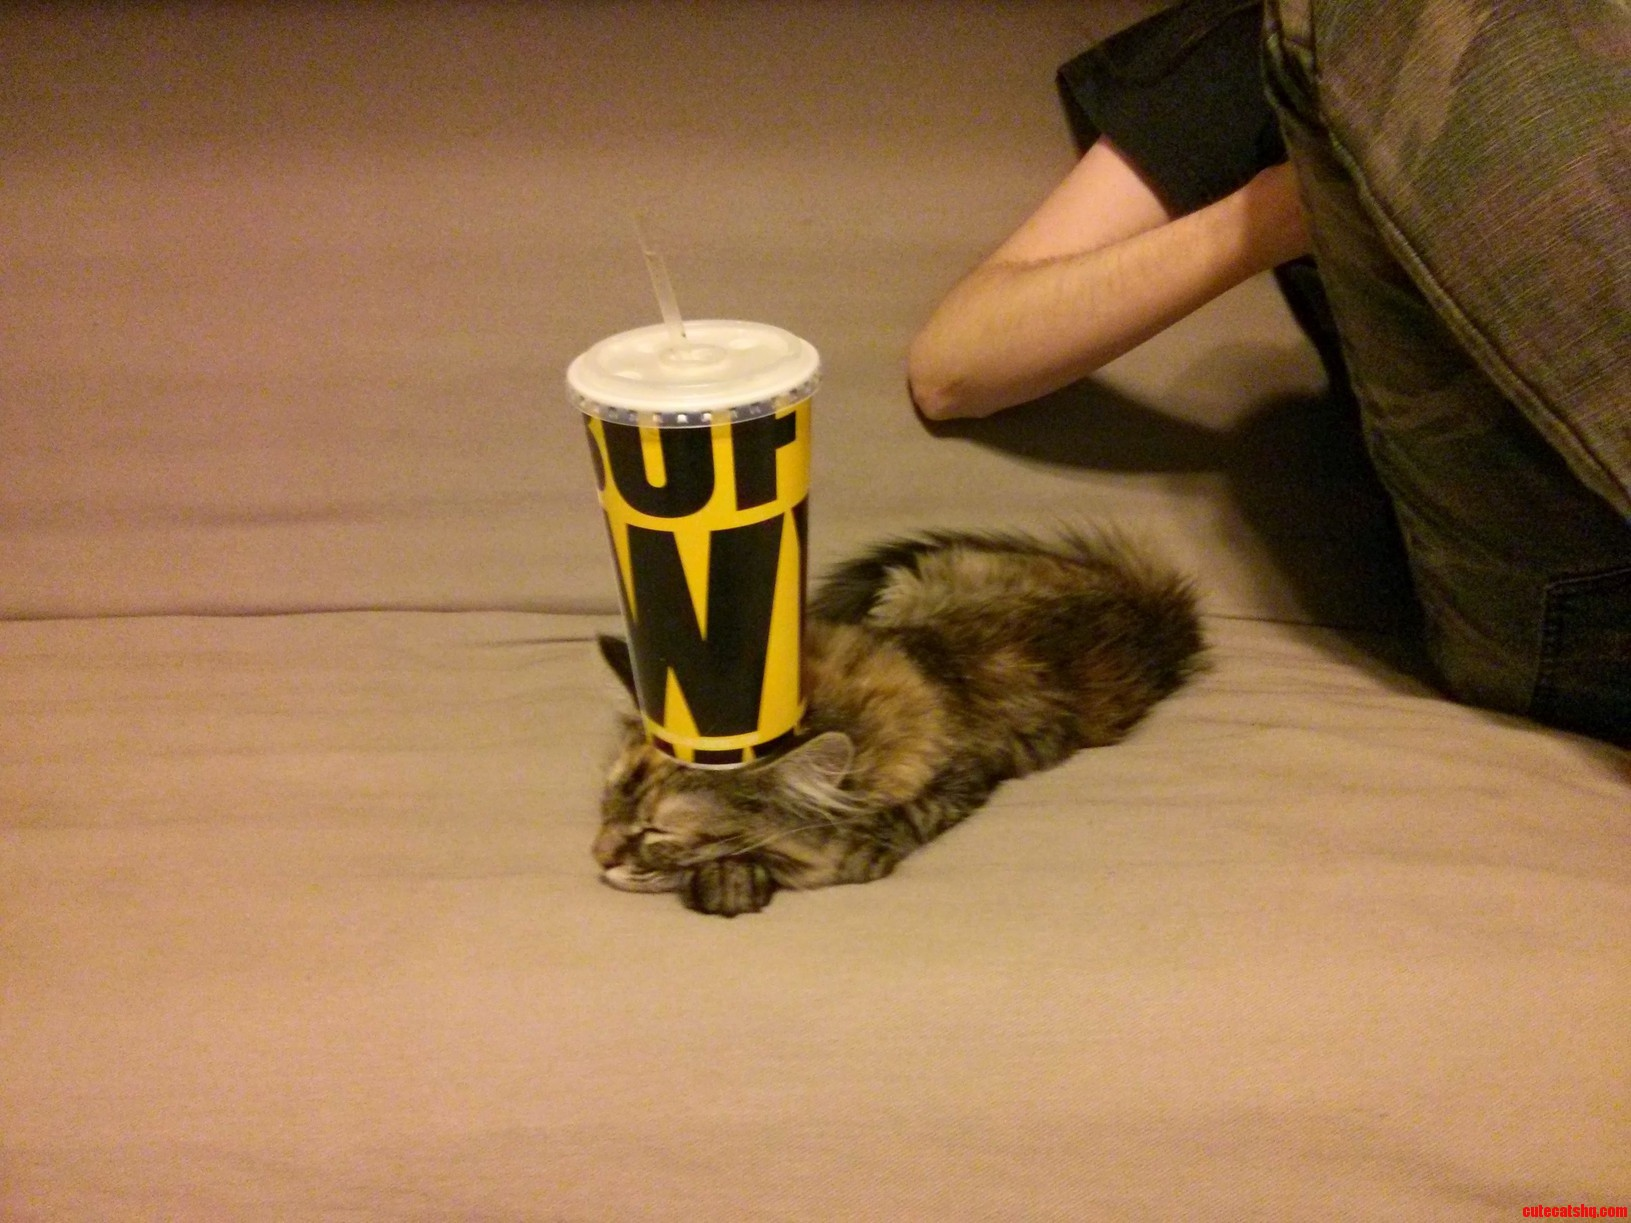 Lucyfurr Now Functioning As A Drink Holder.